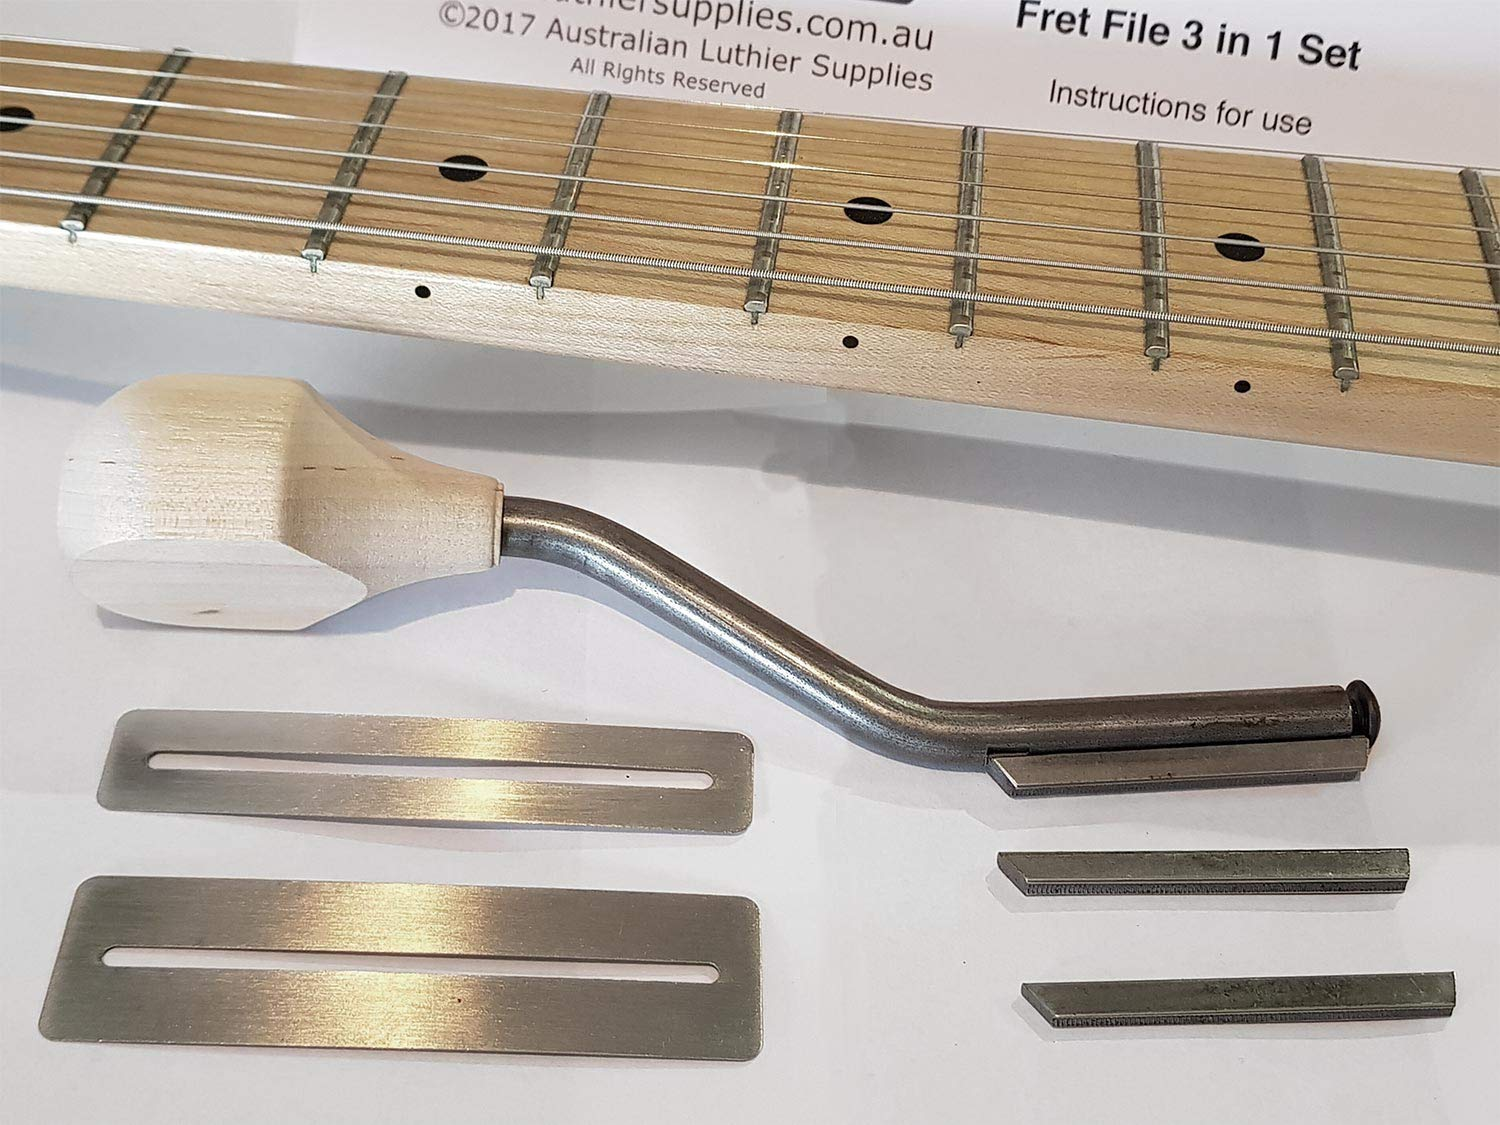 ALS Guitar Fret File & Fingerboard Guard Set with Instructions - 3 in 1 Fret File Made in USA by Gurian - Instructions by Australian Luthier Supplies